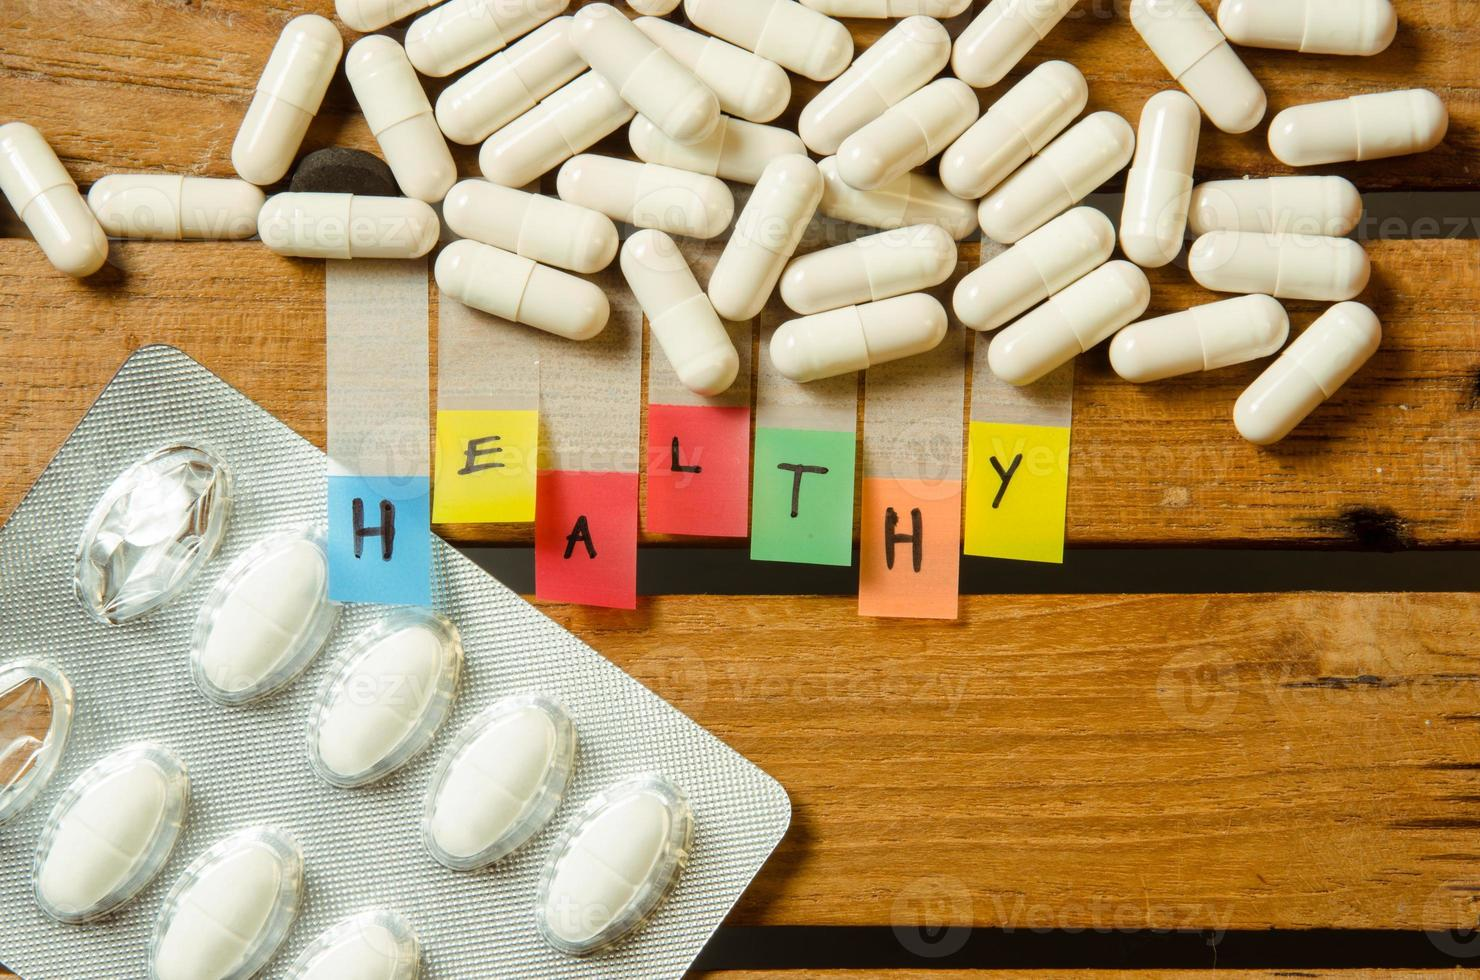 Healthy alphabet and capsule drug with medicine dose photo